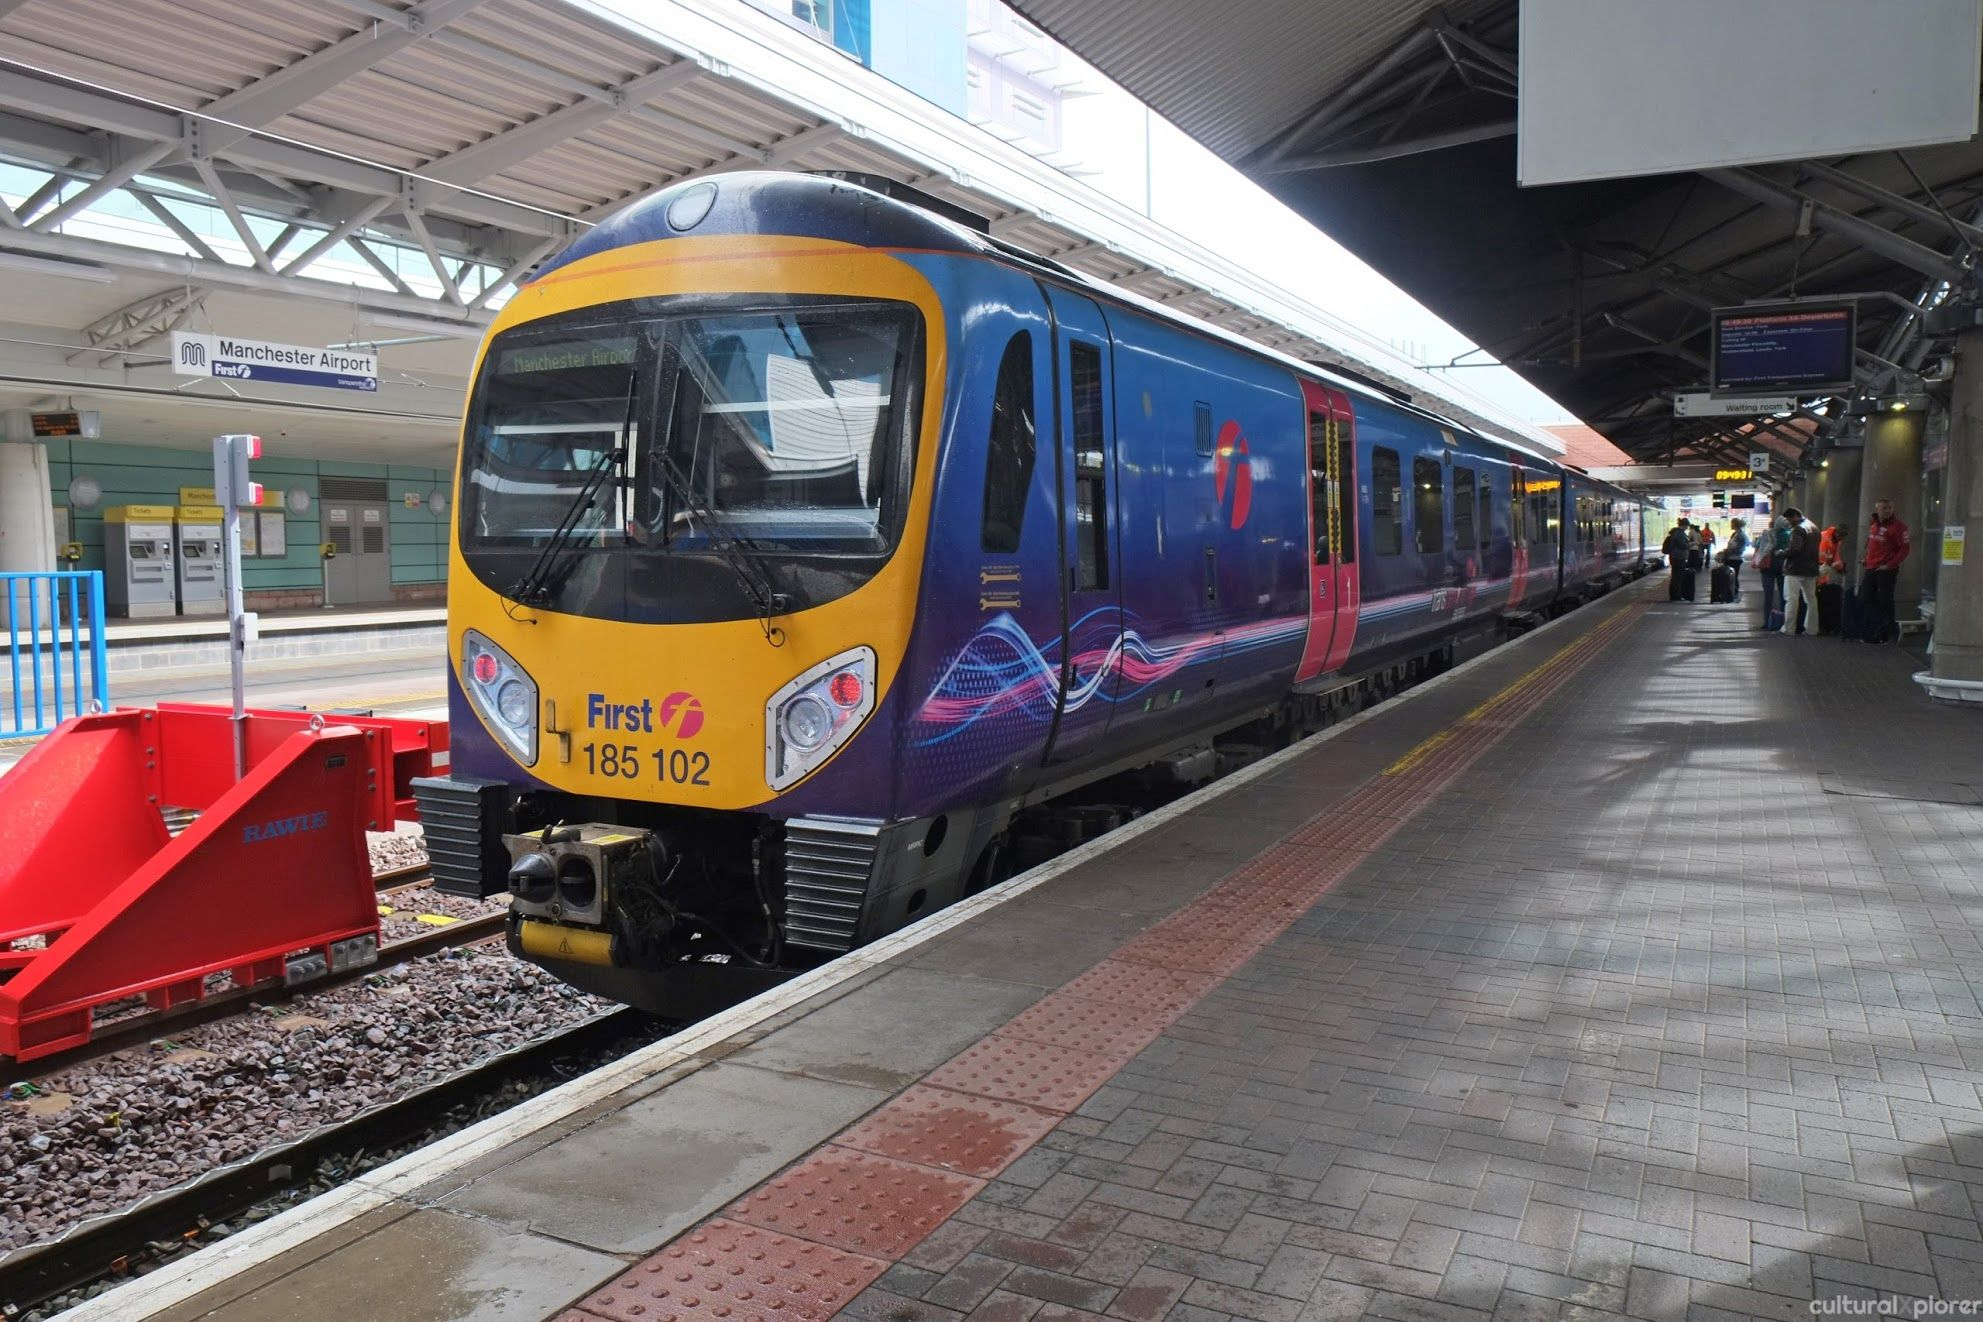 404bdc39bac6dbf809a9445b790644bd - How To Get From Manchester Train Station To Airport